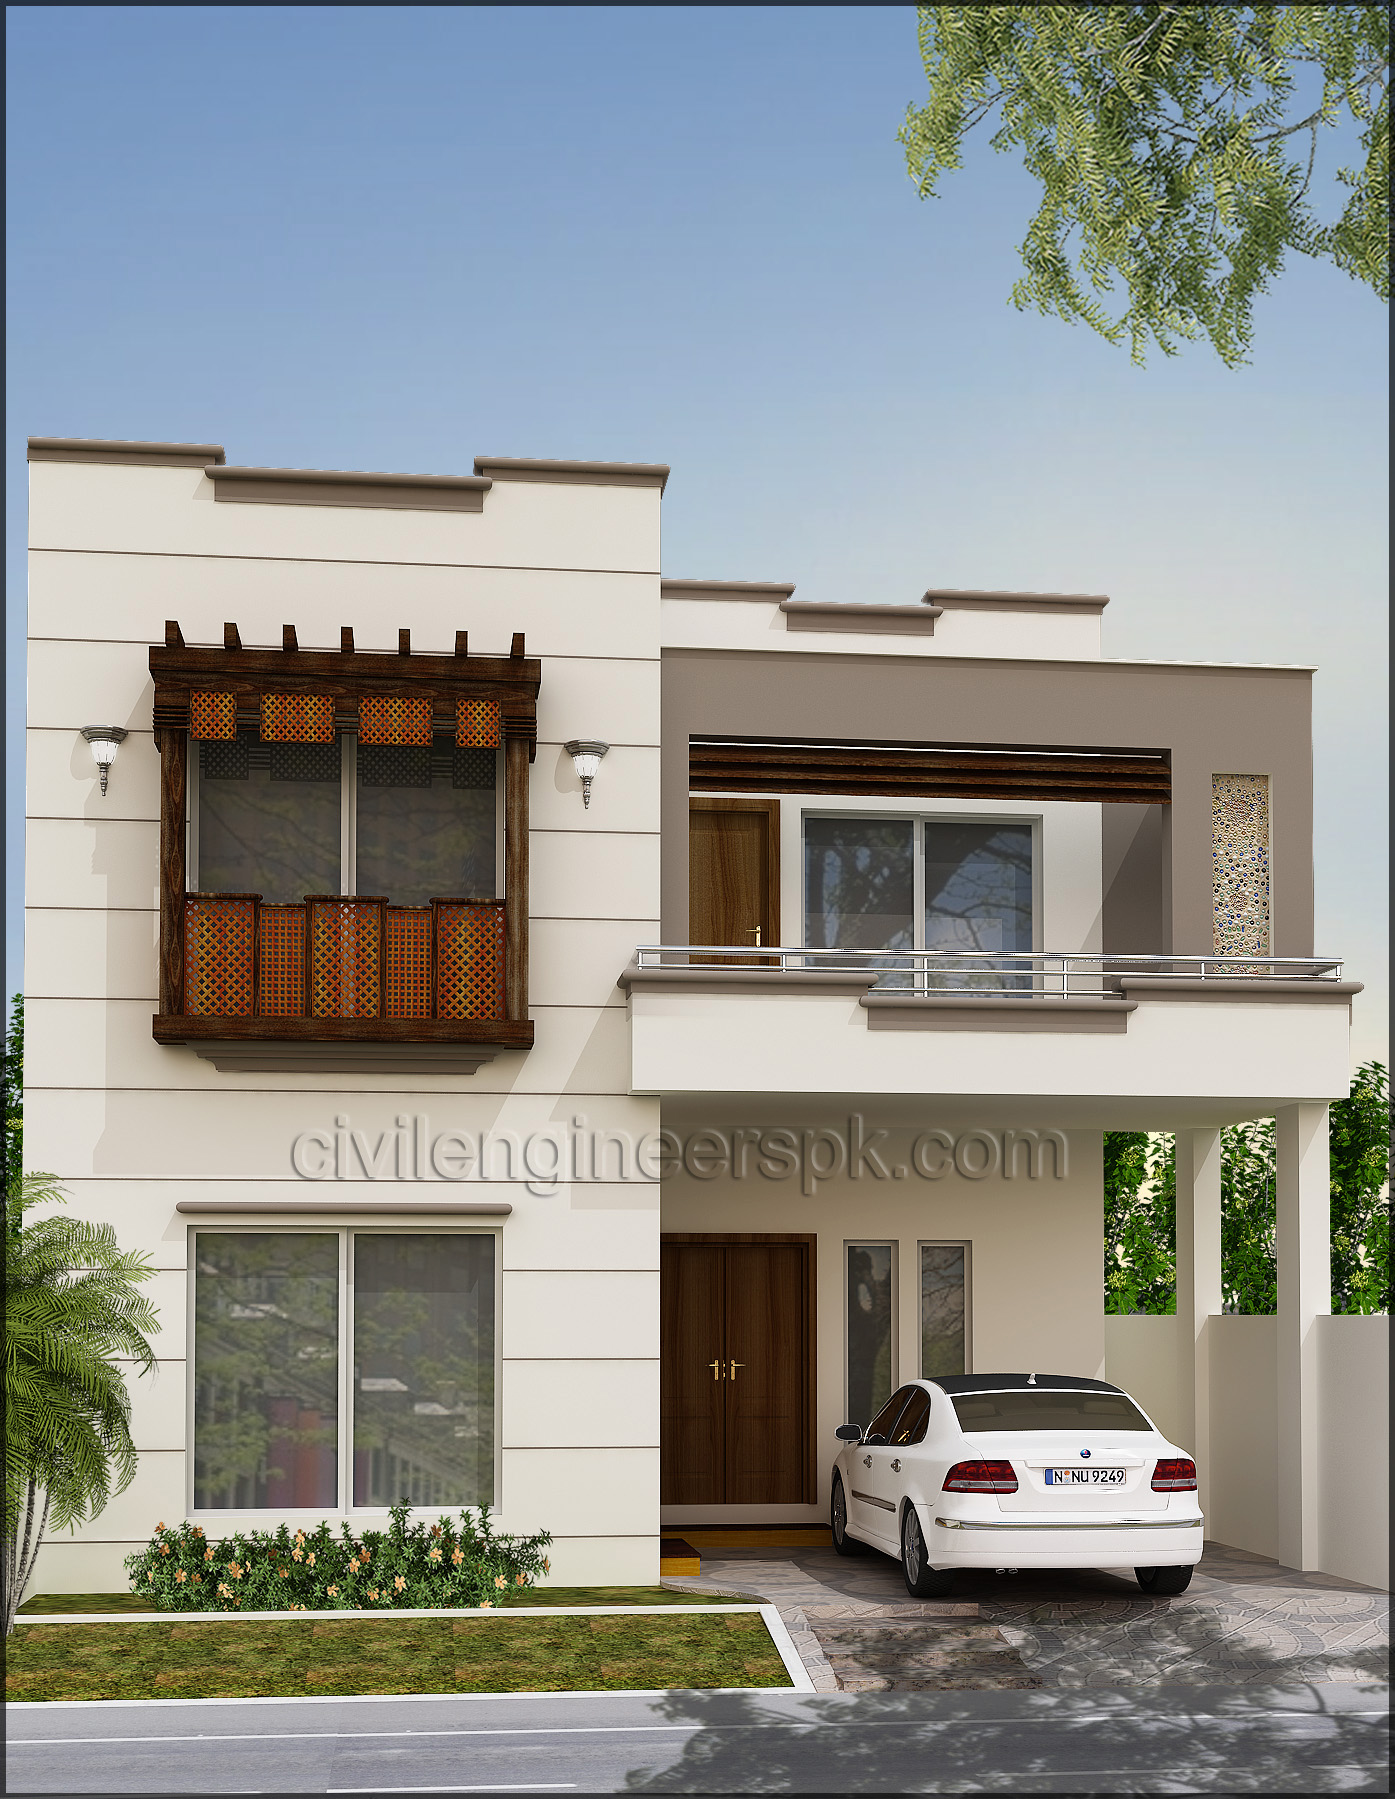 Front Elevation In Lahore : Front views civil engineers pk